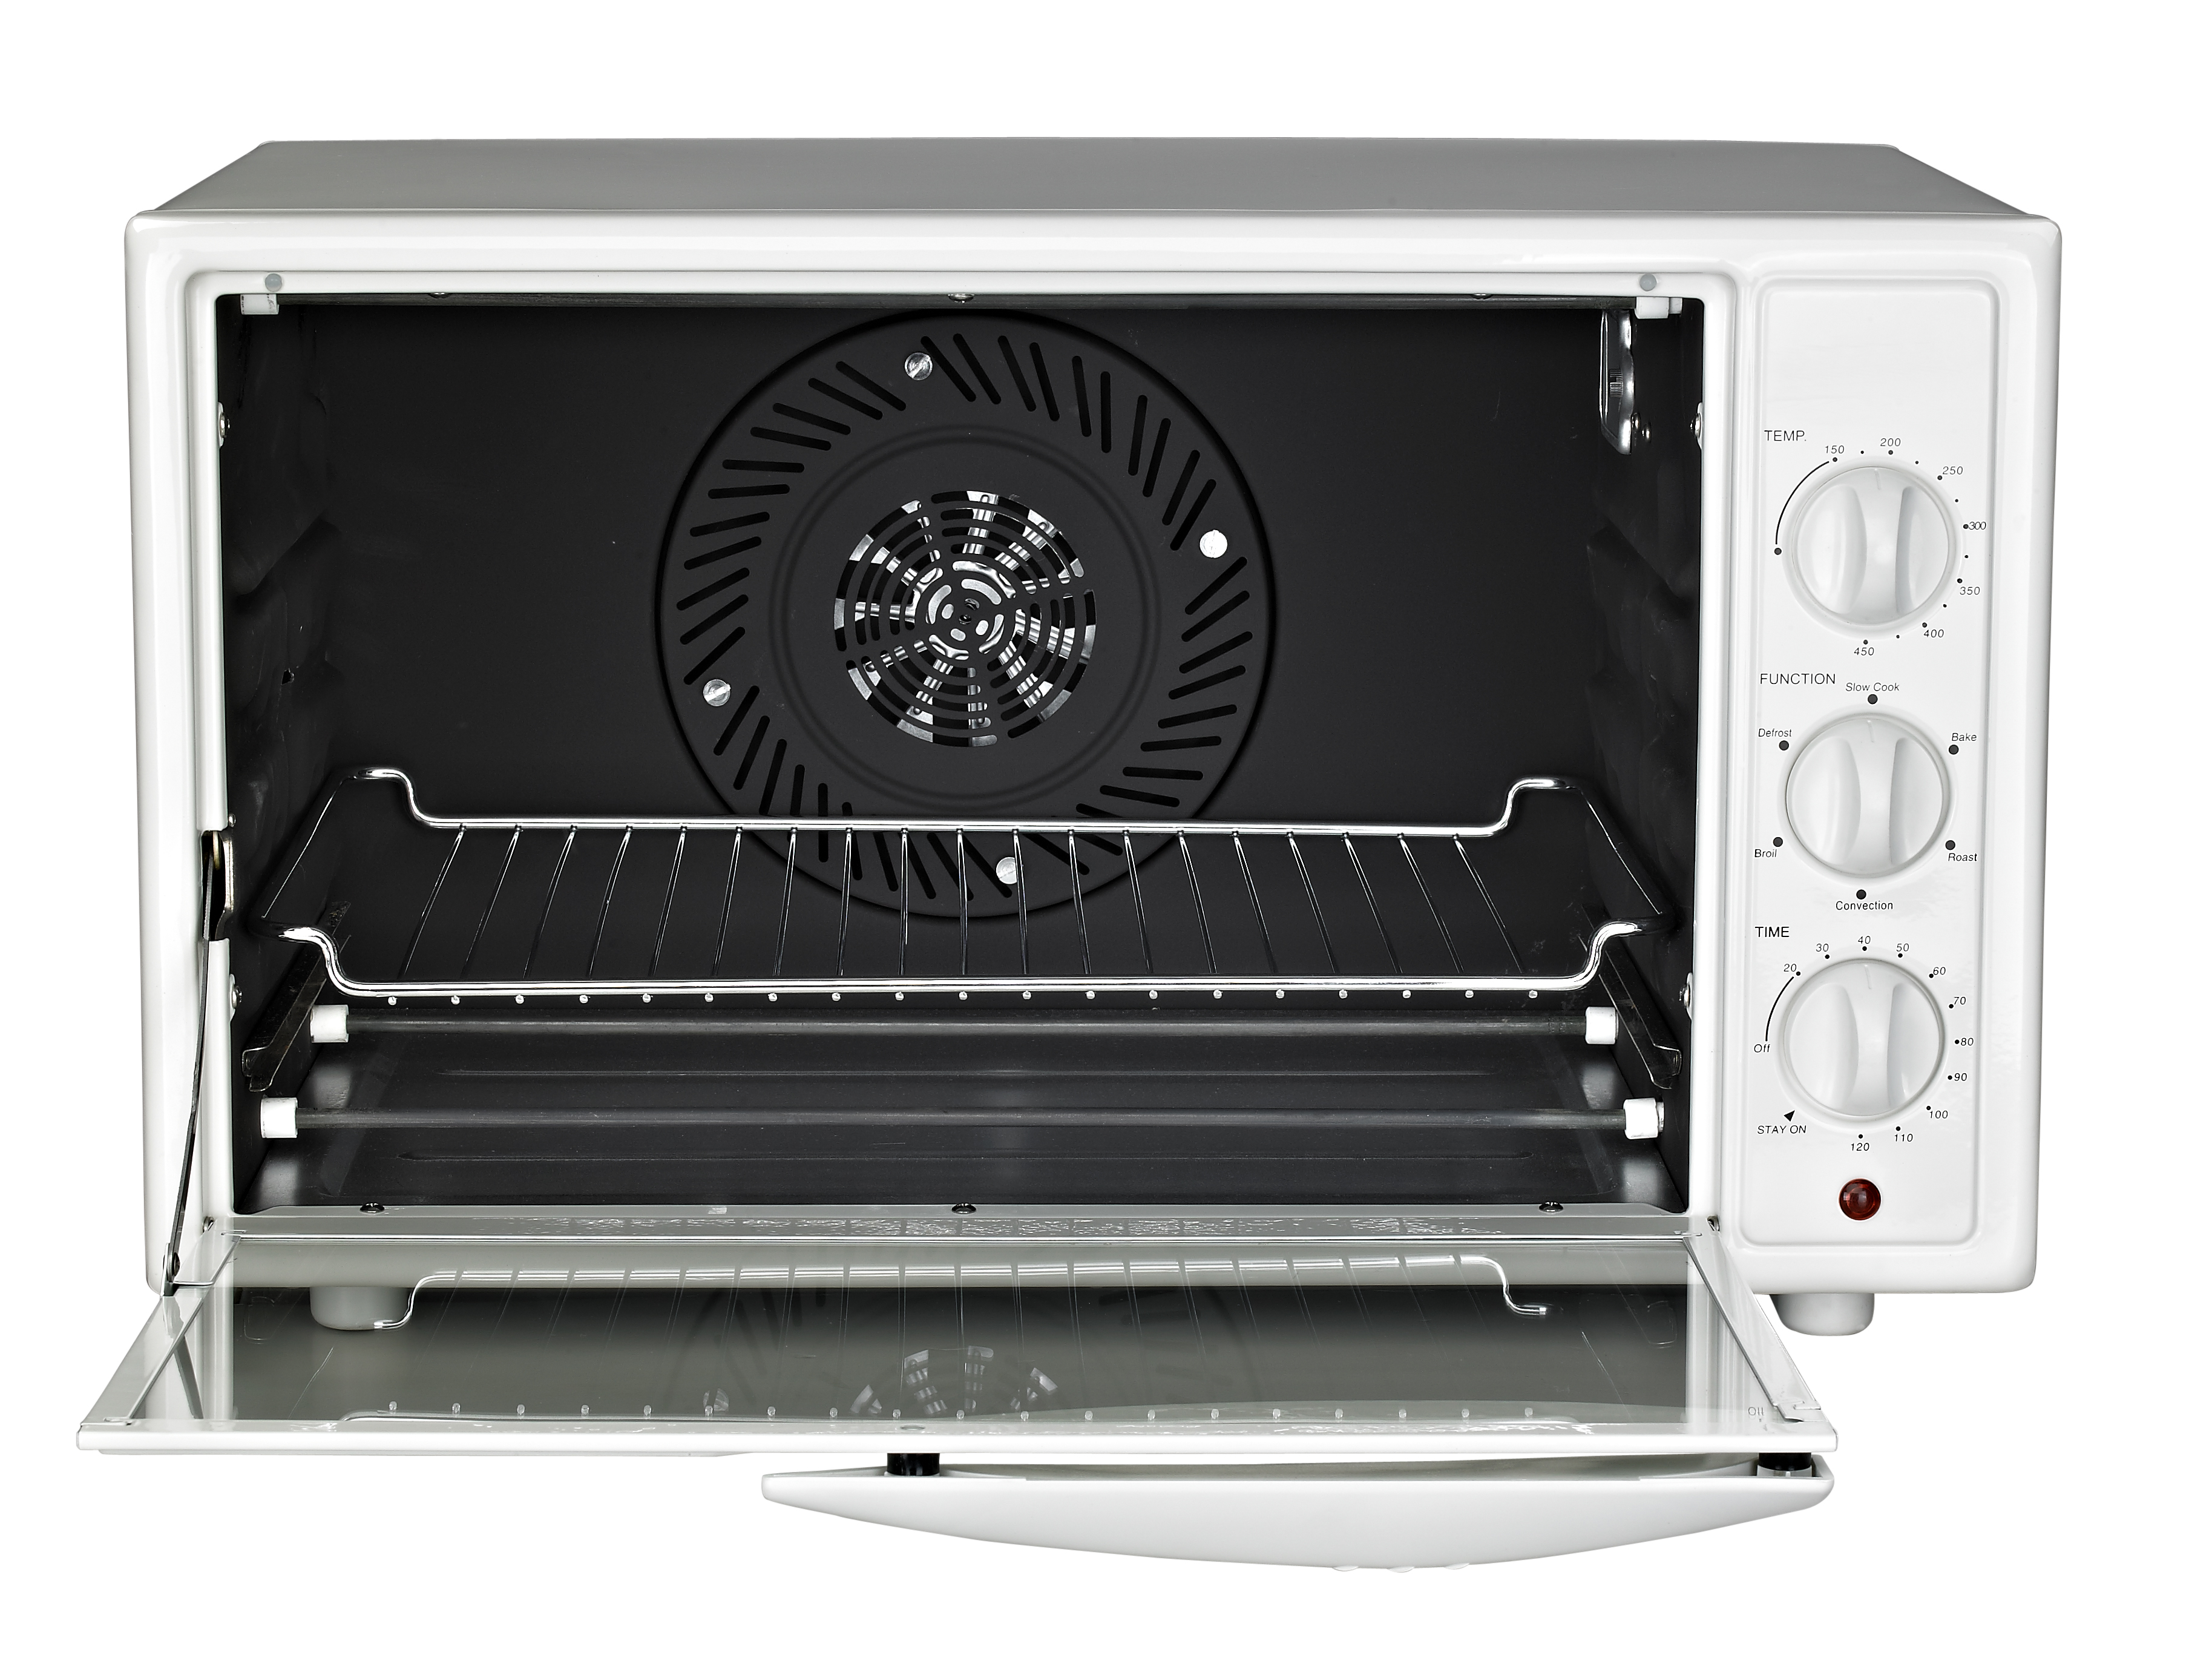 club oster imageservice oven id profileid wholesale close convection countertop product toaster undefined bjs large recipeid countertops